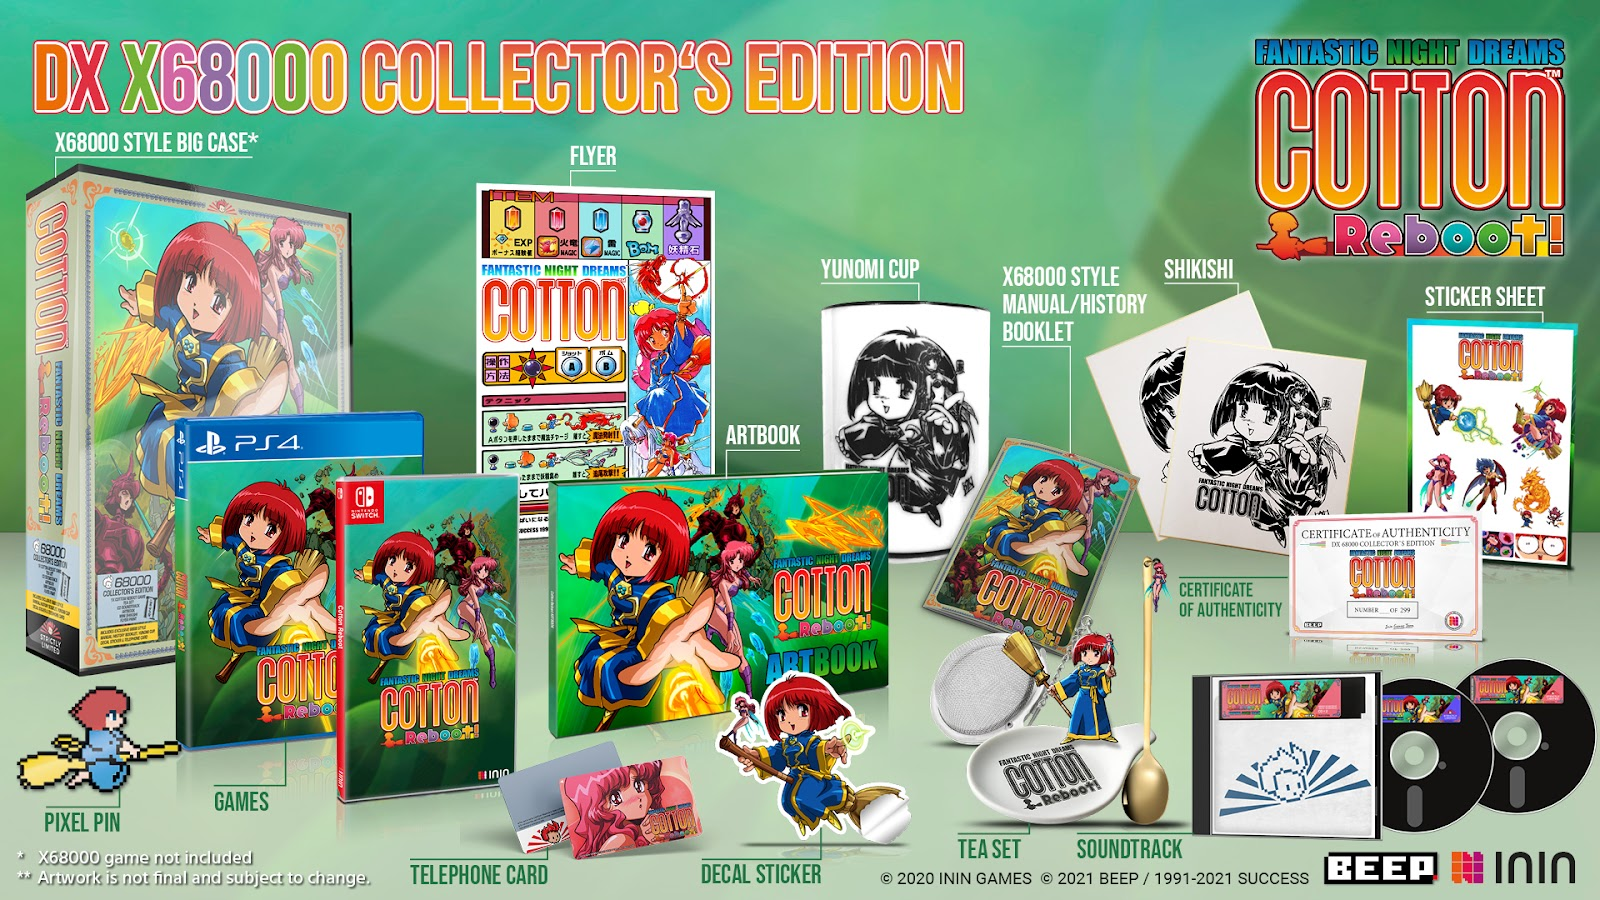 Deluxe Collector's Edition